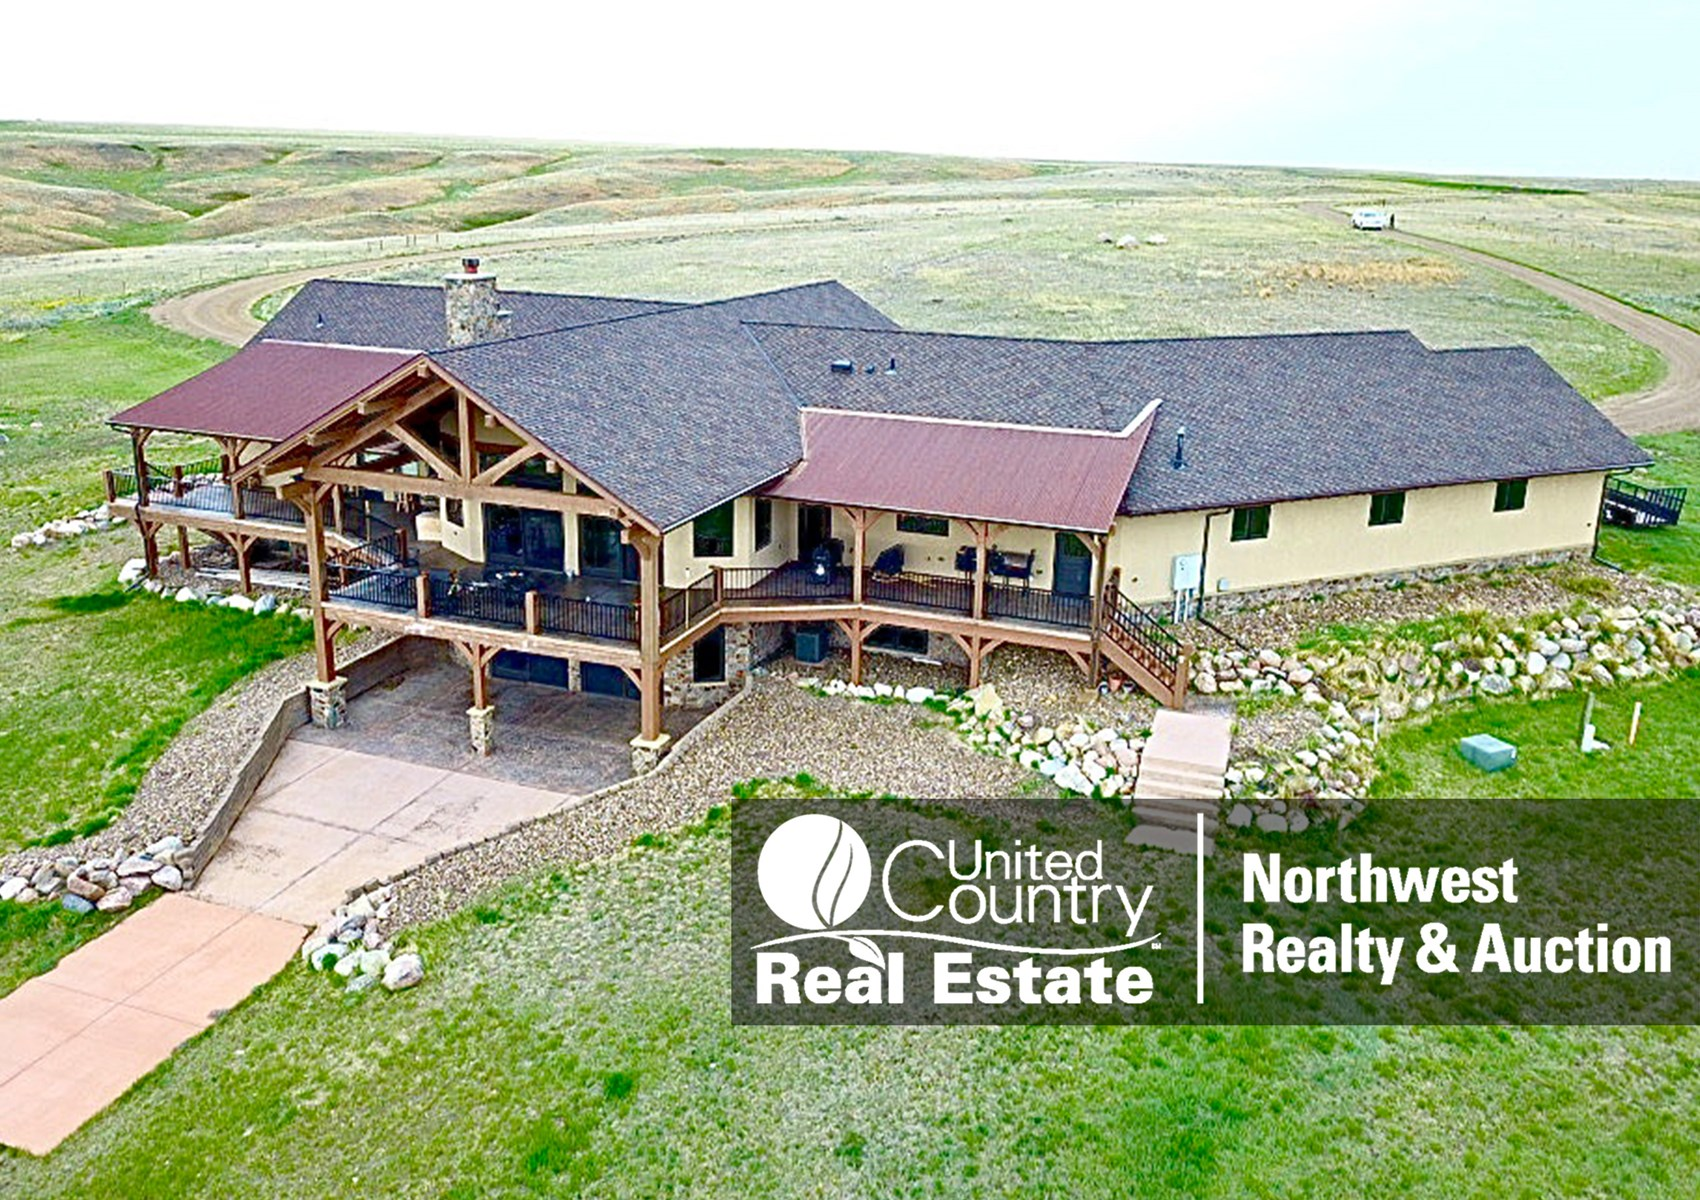 Luxury Ranch with Custom-Built Home For Sale in Malta, MT